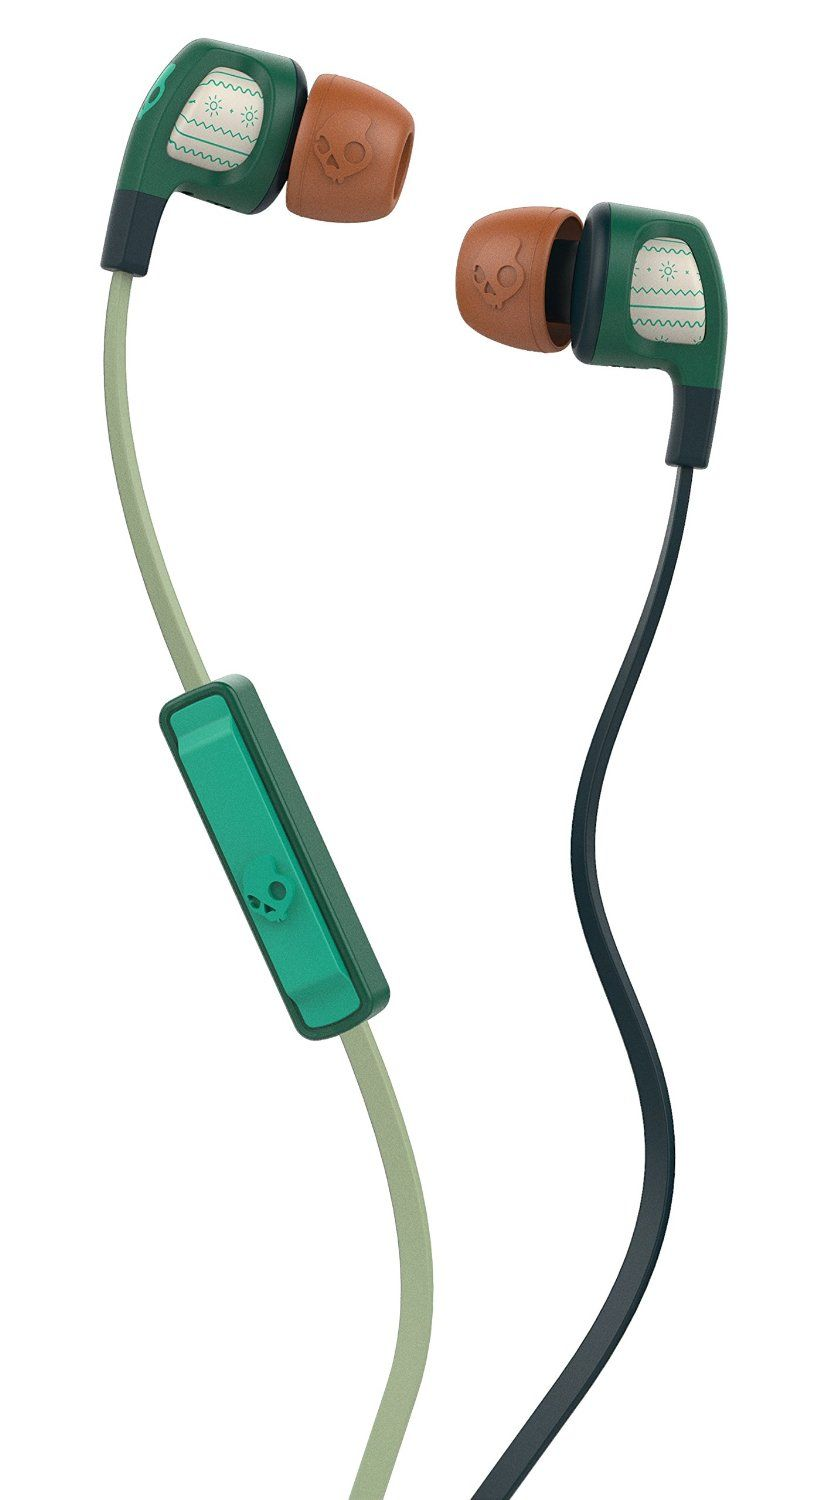 06c77970f07 Amazon.com: Skullcandy Smokin Buds 2 Explorer/Forest/Green In-ear ...